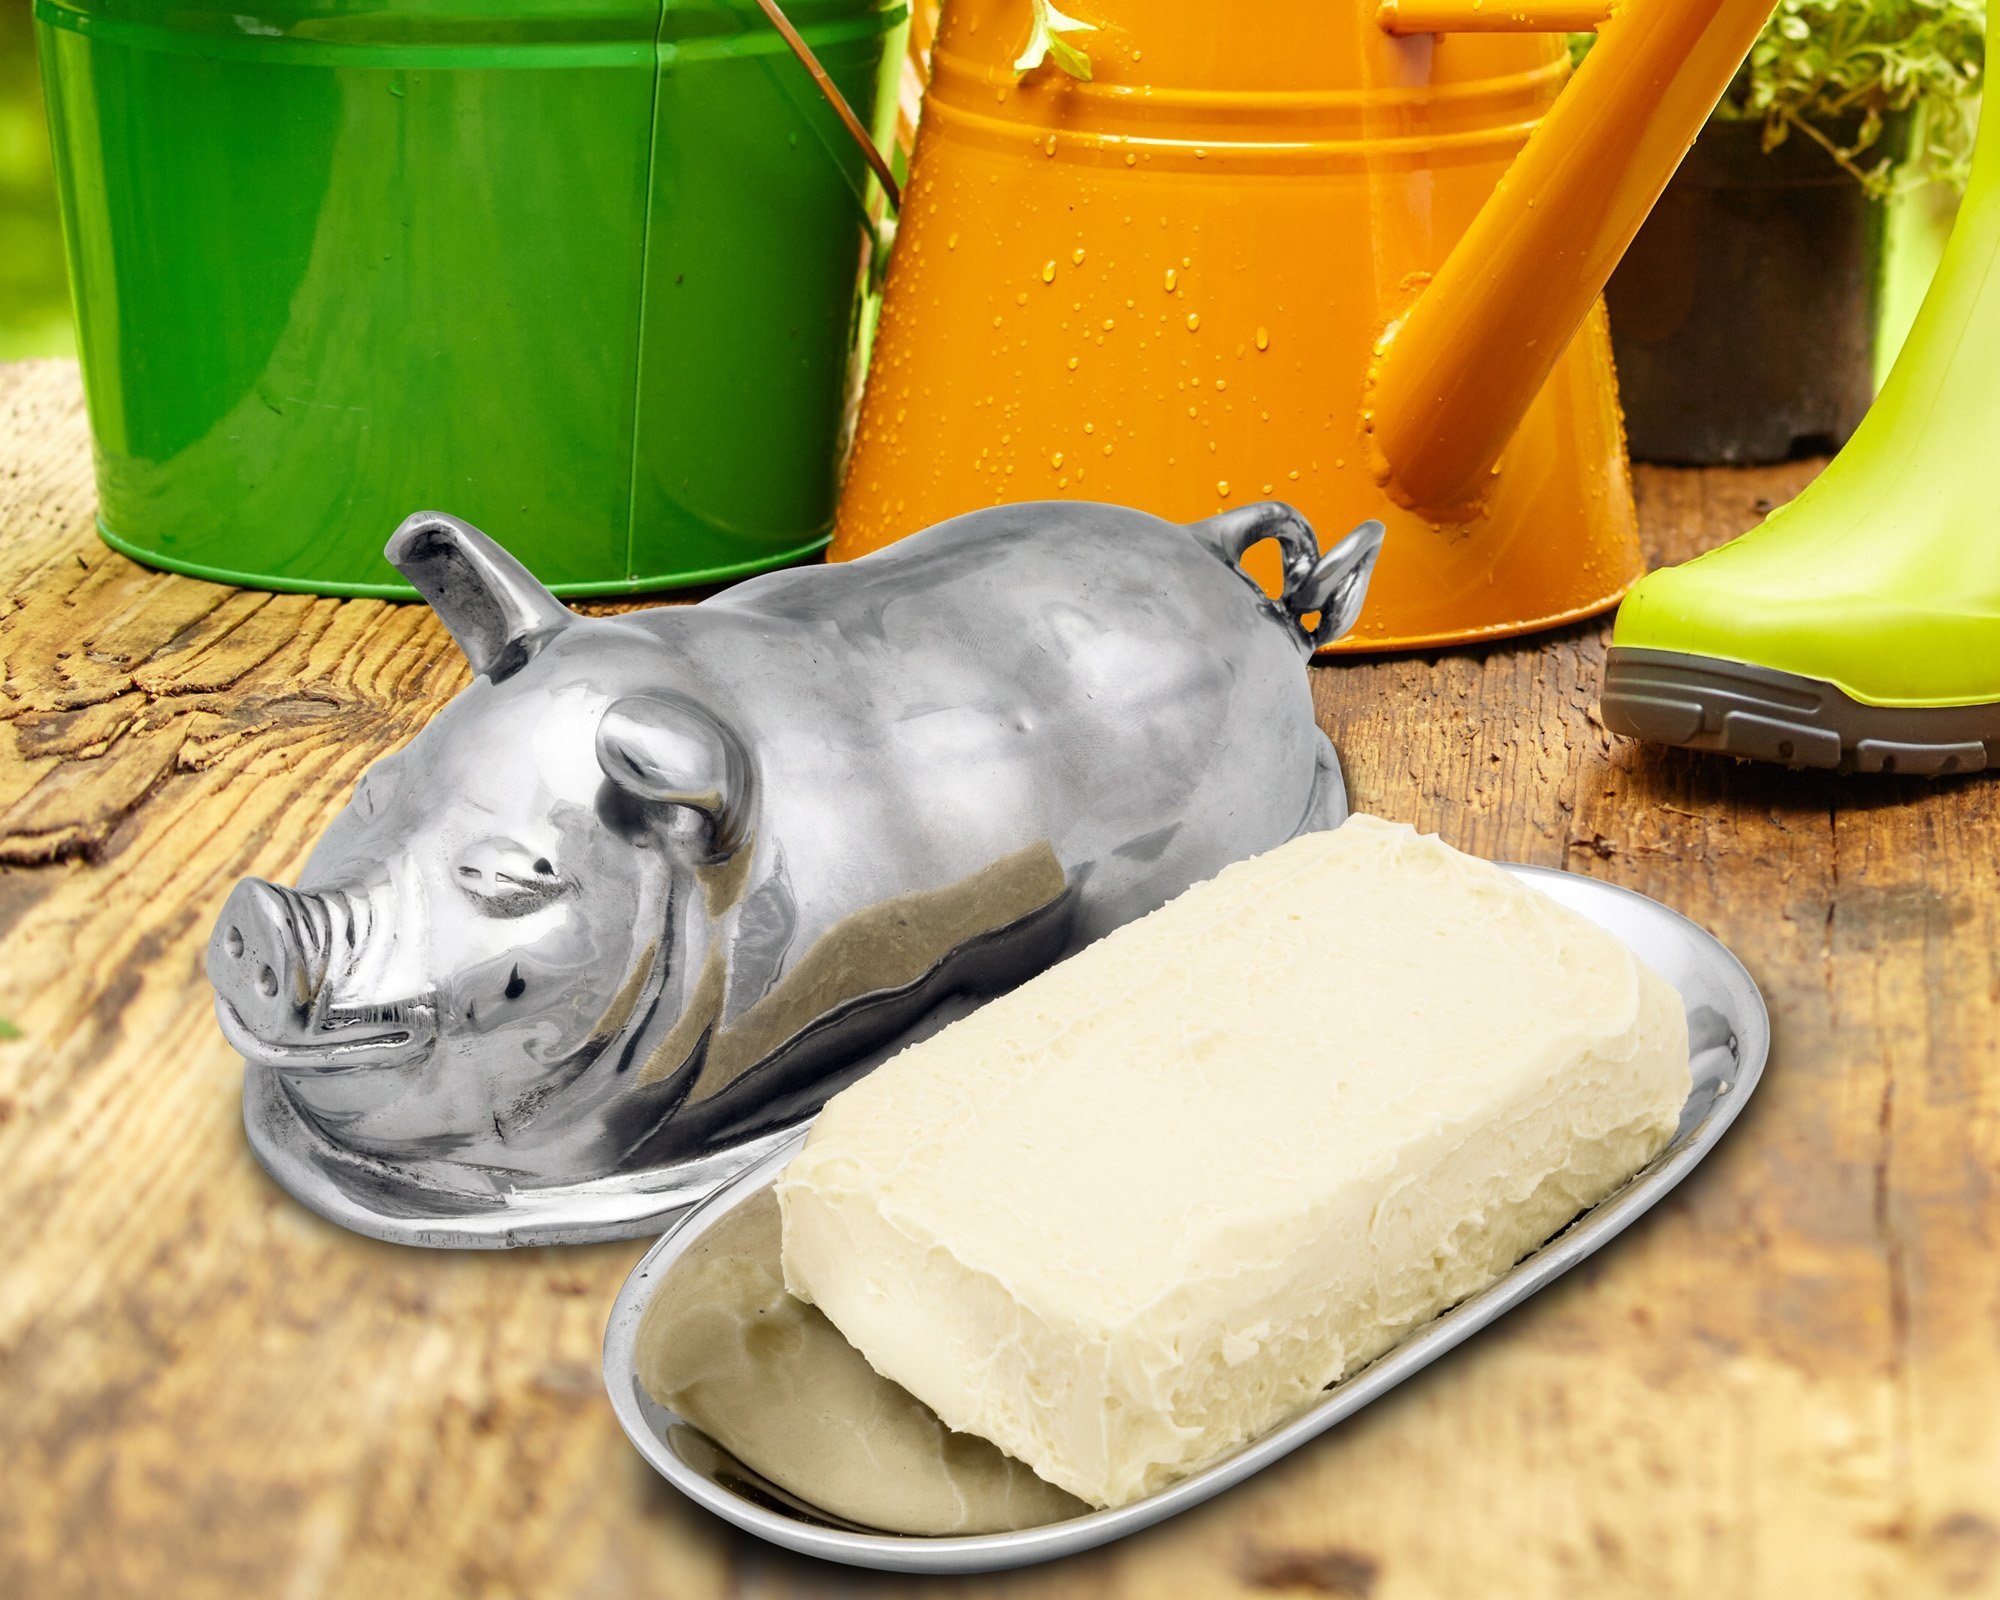 Arthur Court Happy Pig Butter Cream Cheese Dish 3.75'' Long x 7.5'' Wide x 3.5'' Tall